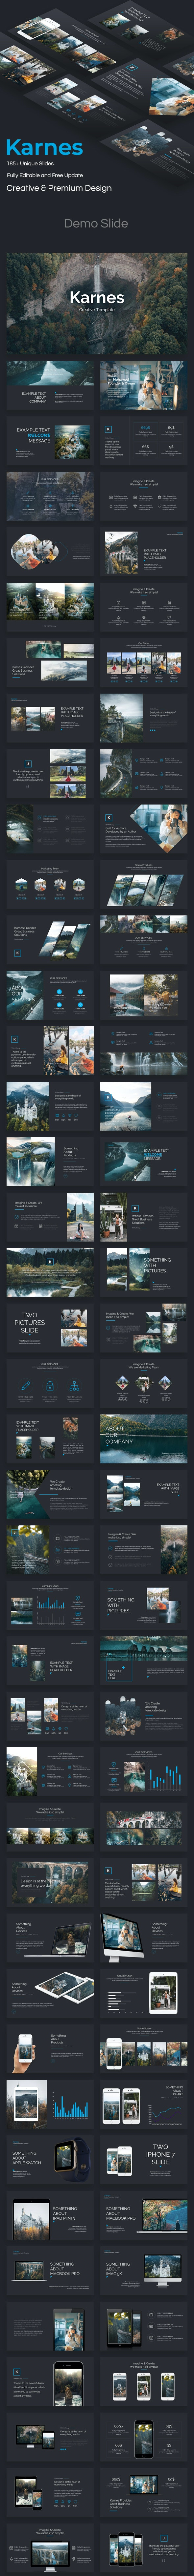 Karnes Creative Powerpoint Template - Creative PowerPoint Templates